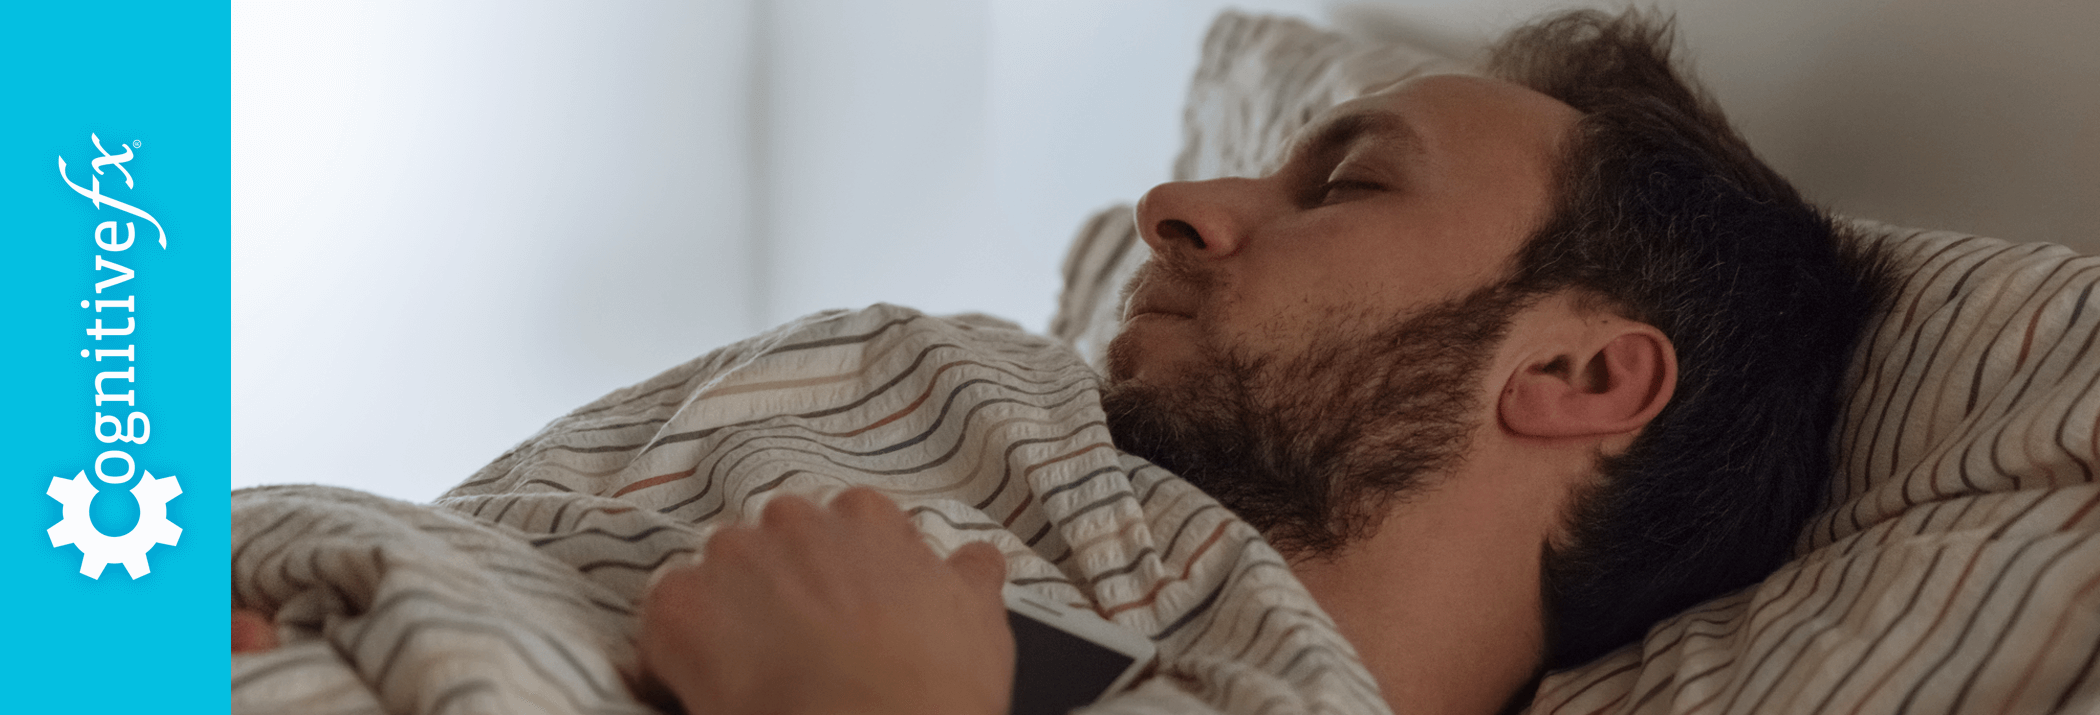 Post Concussion Syndrome & Sleep: Why You're Suffering and What to Do About It